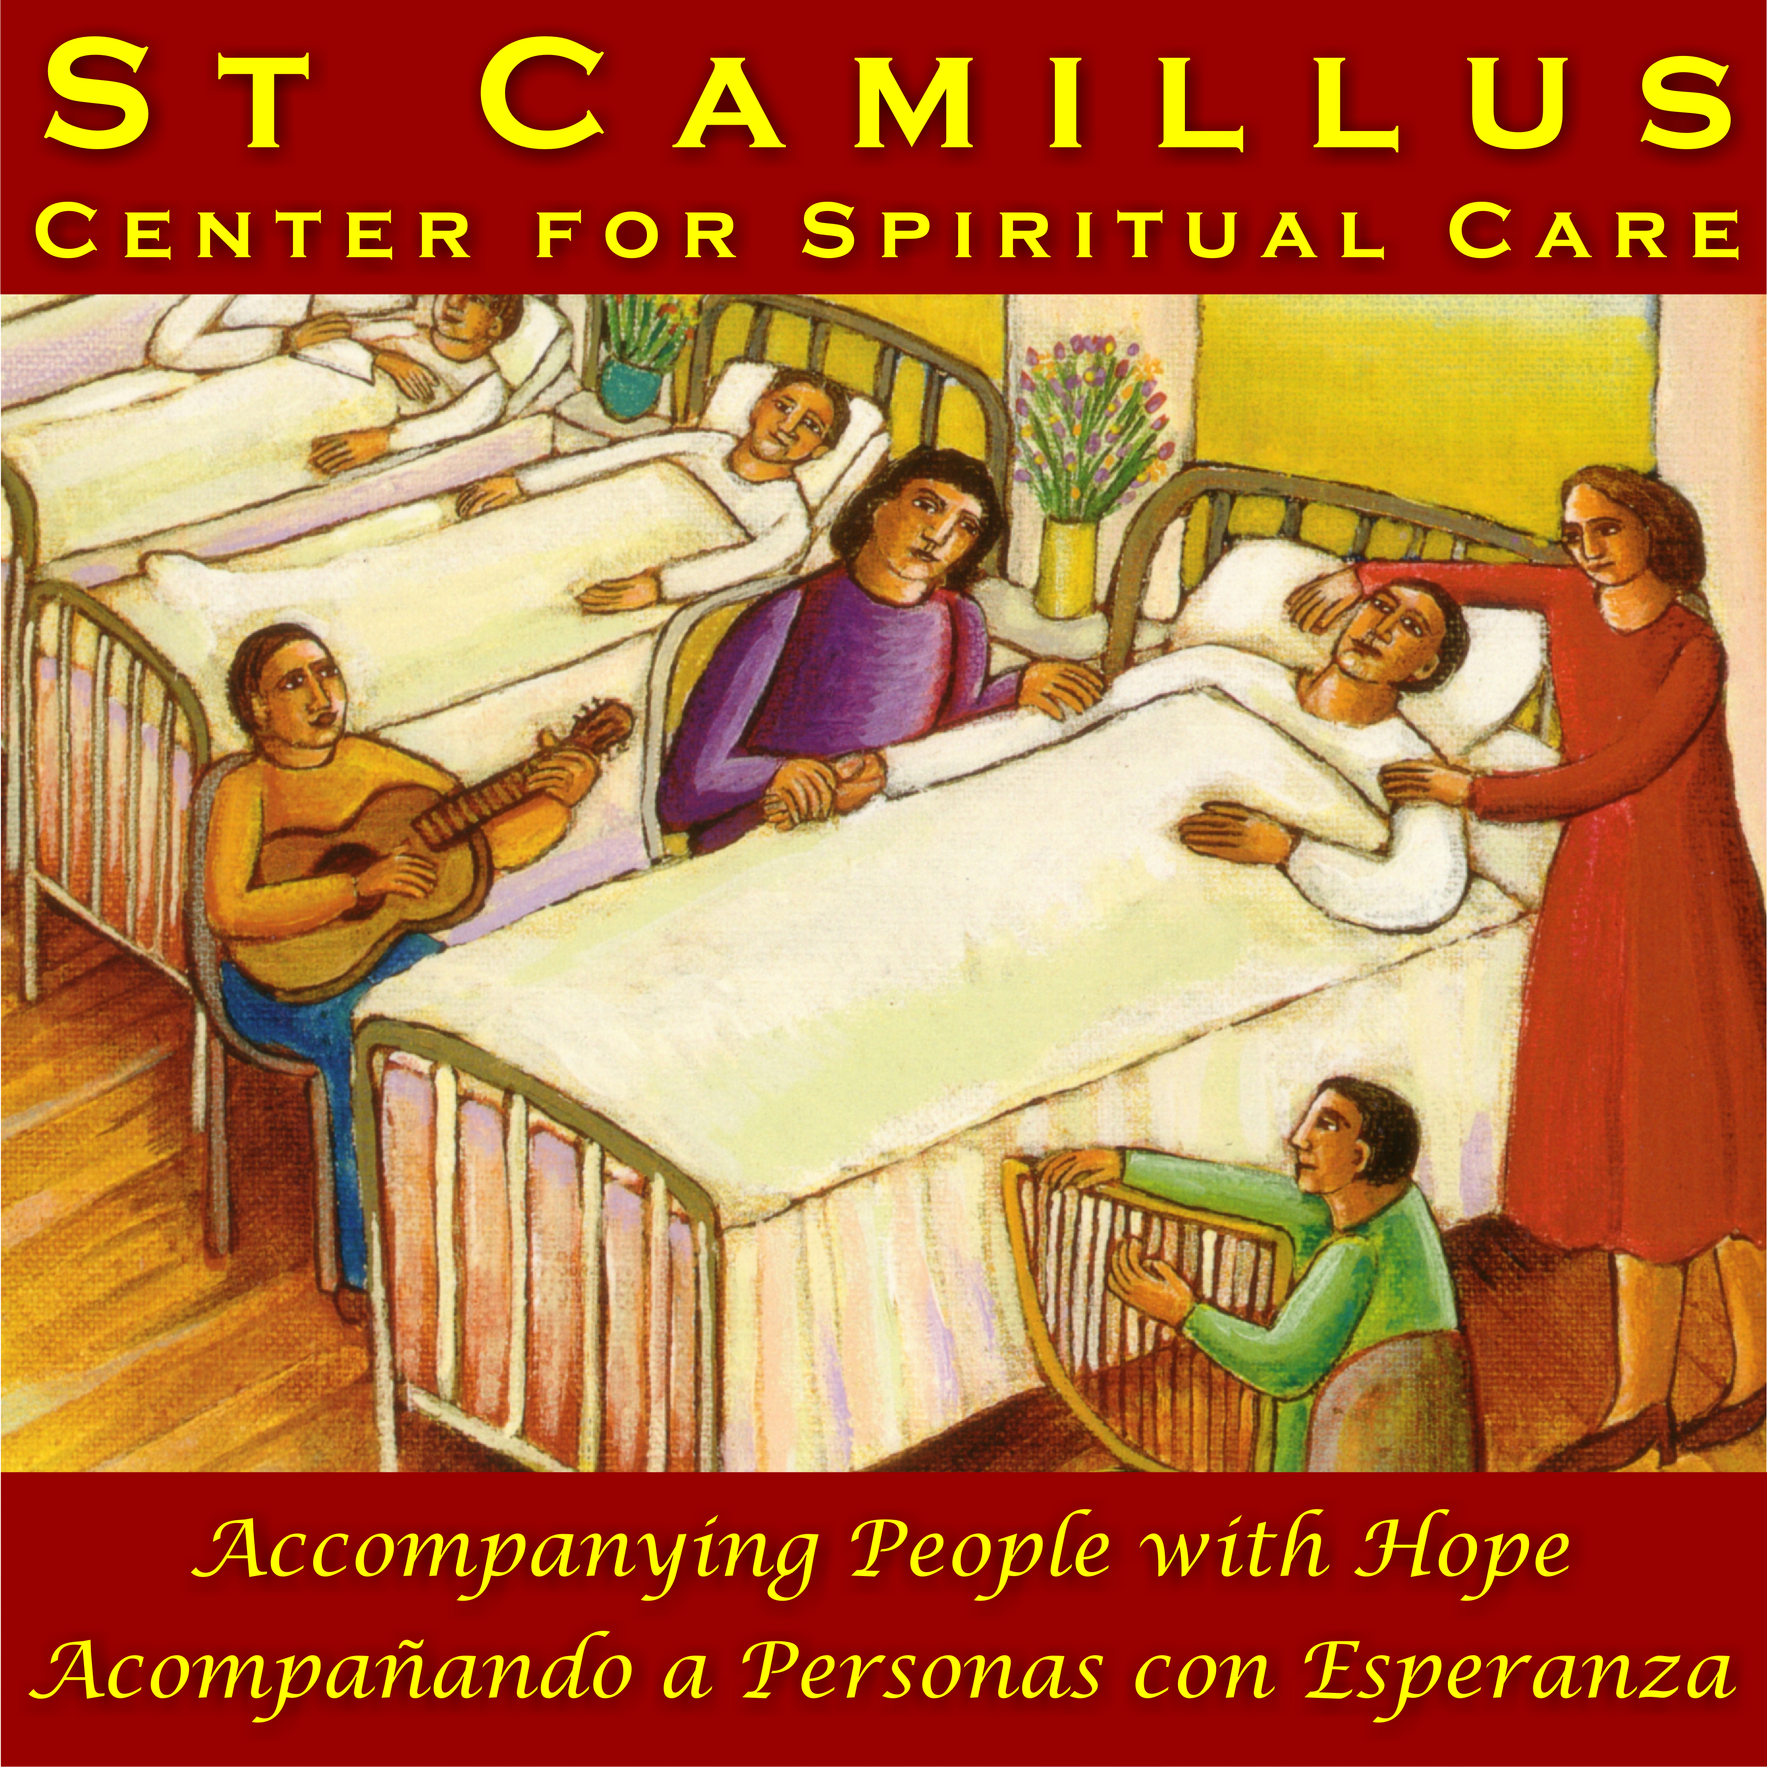 Please Donate to St Camillus Center and all our Outreach Ministries image